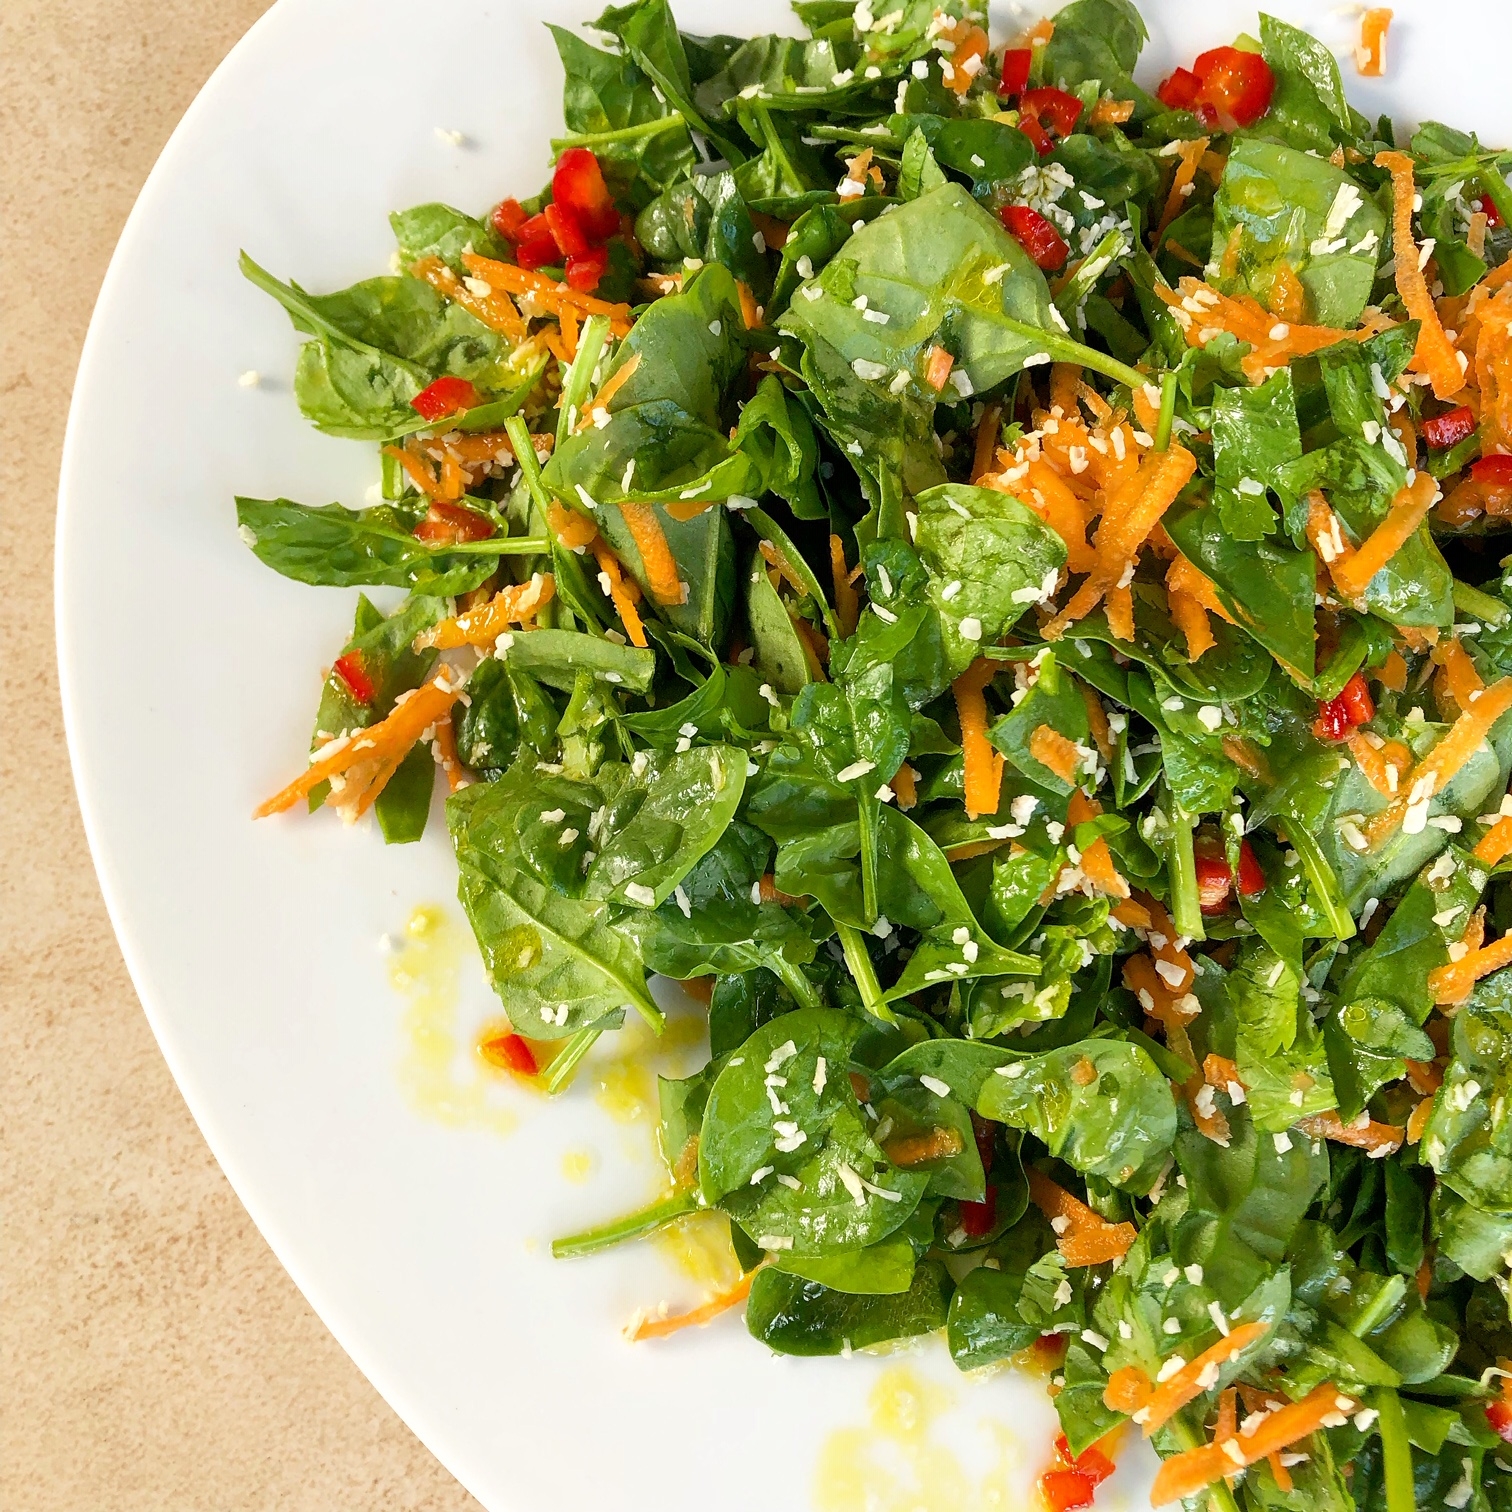 Spinach, Carrot and Coconut Salad